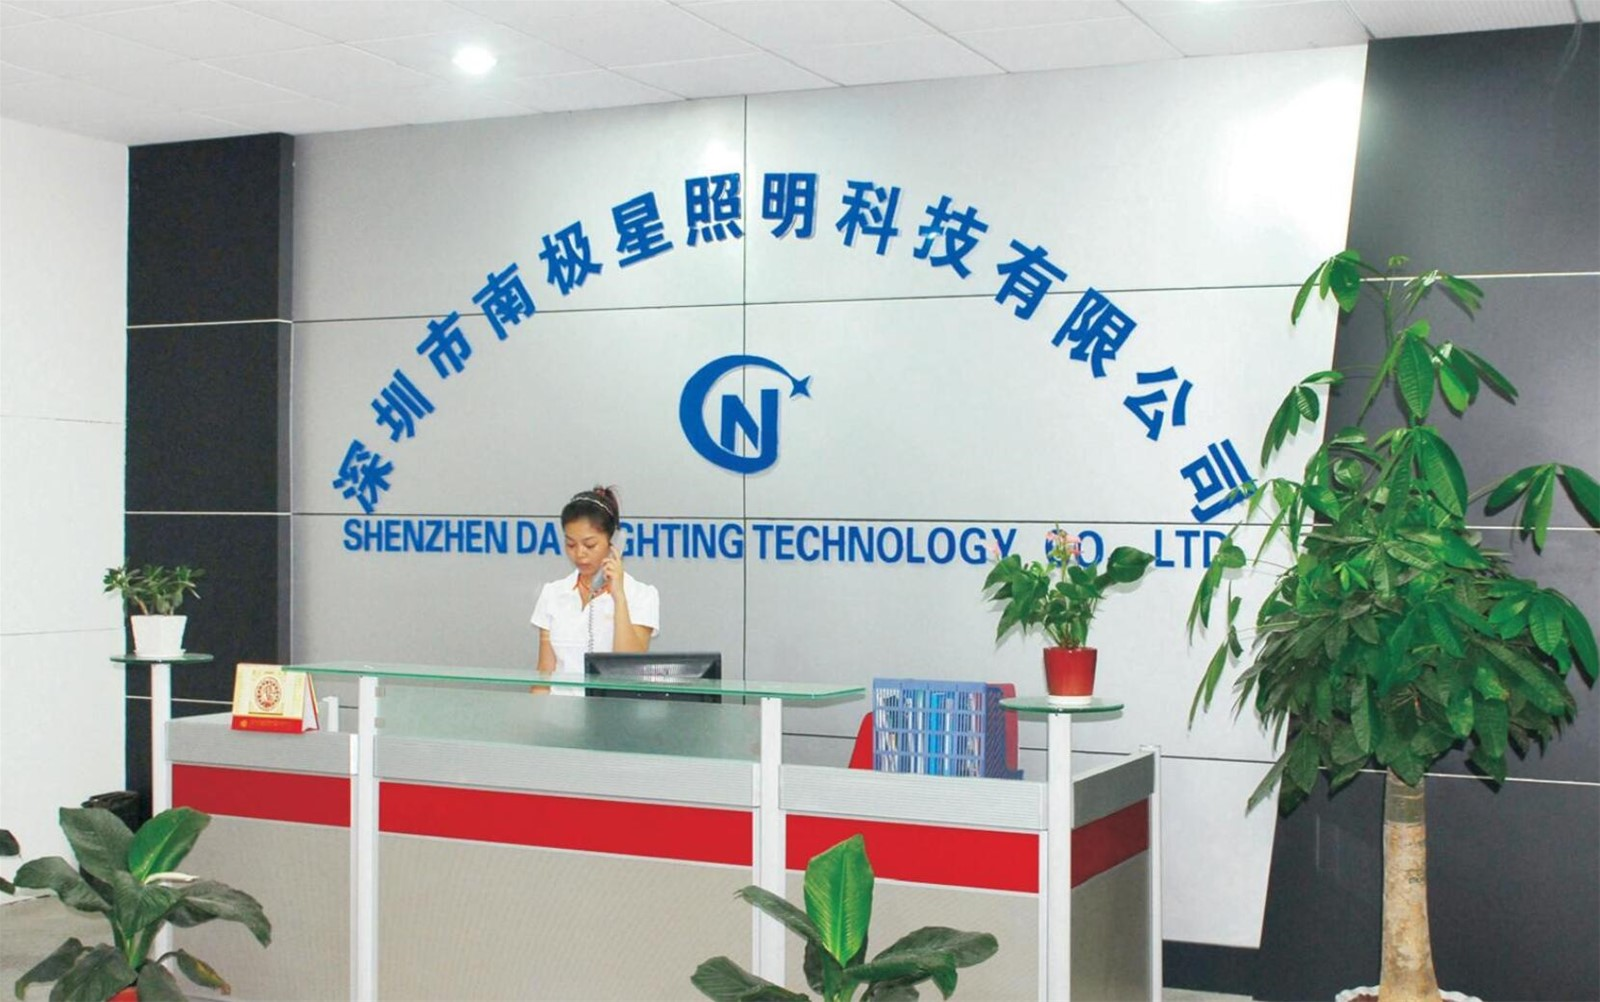 Shenzhen Daylighting Technology Co., Ltd.